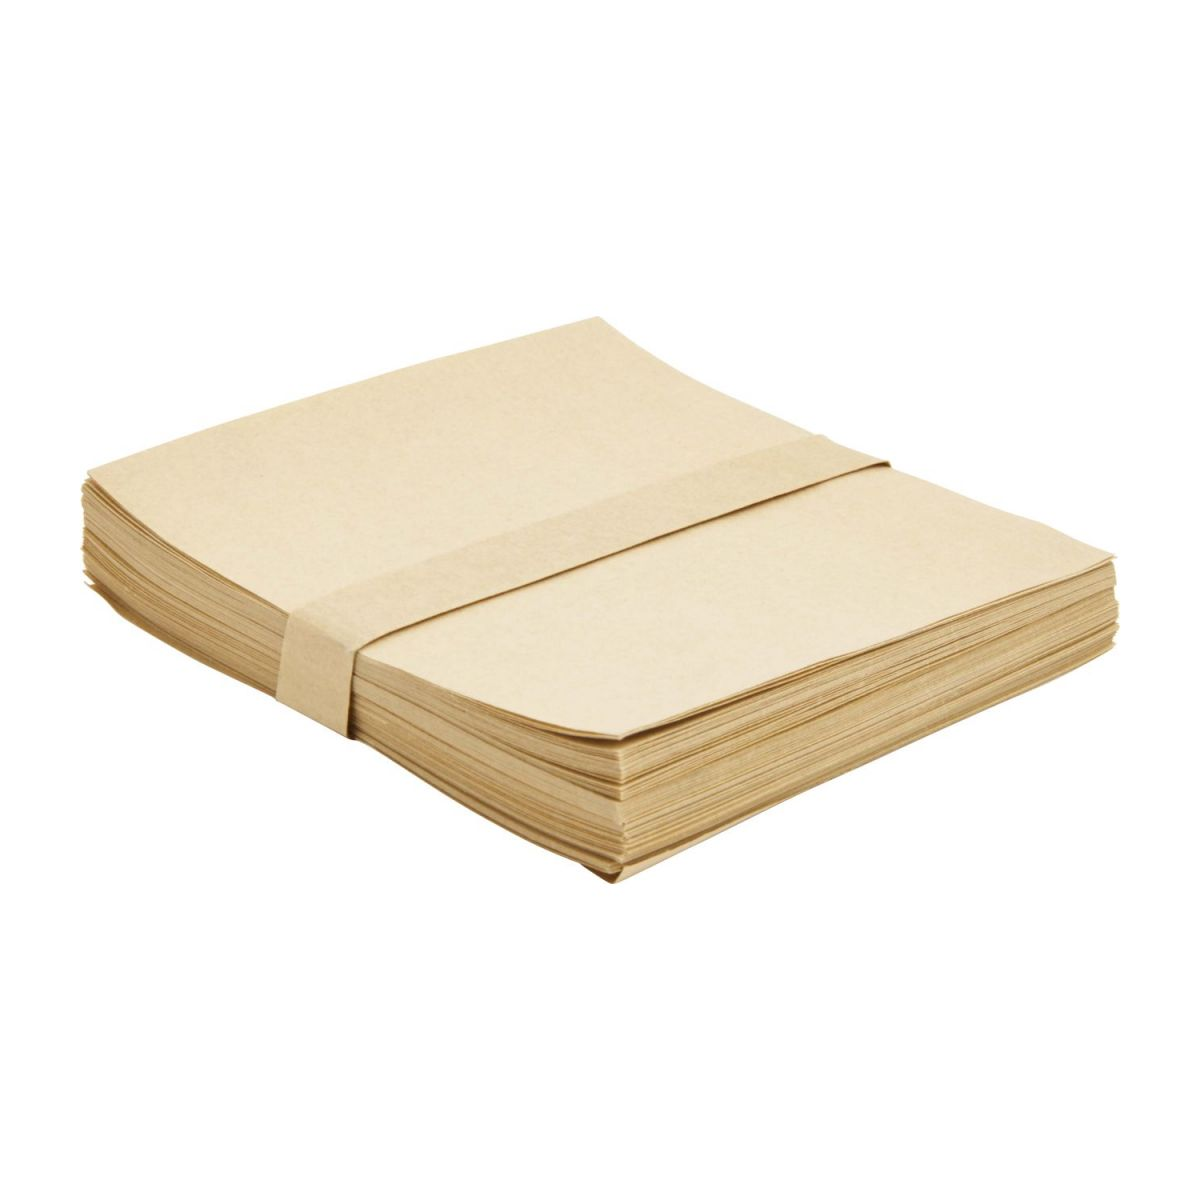 Stationery box (14 pieces) n°14